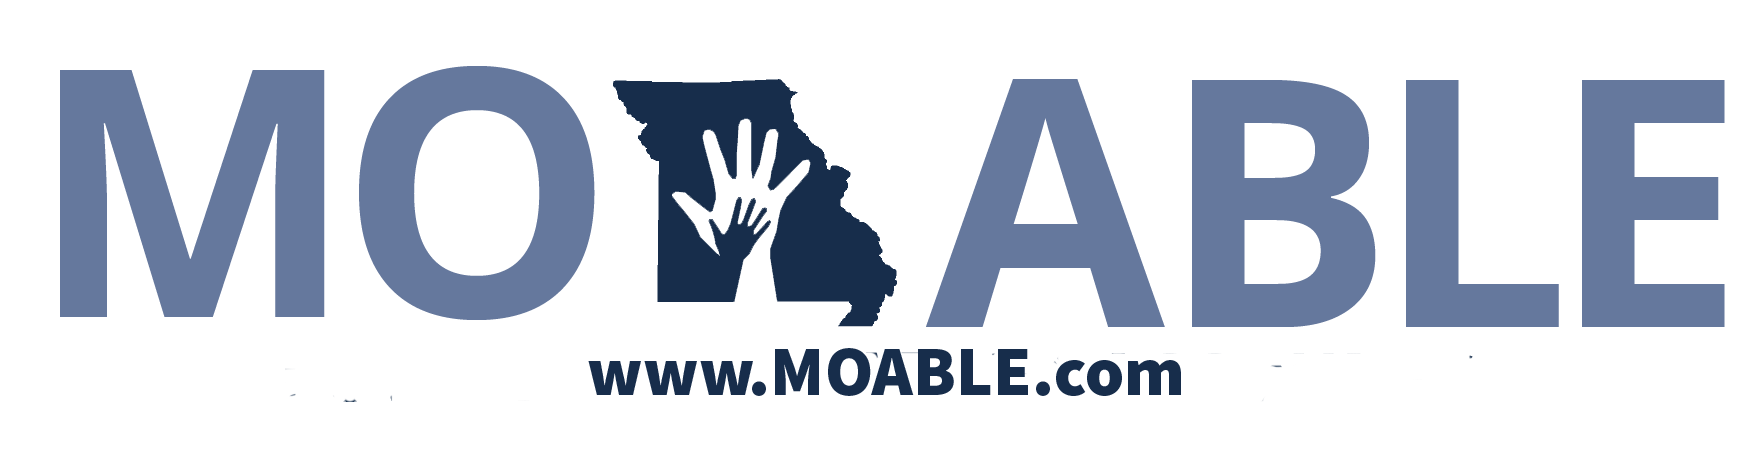 MO ABLE Accounts Workshop – August 1, 1-2 p.m.